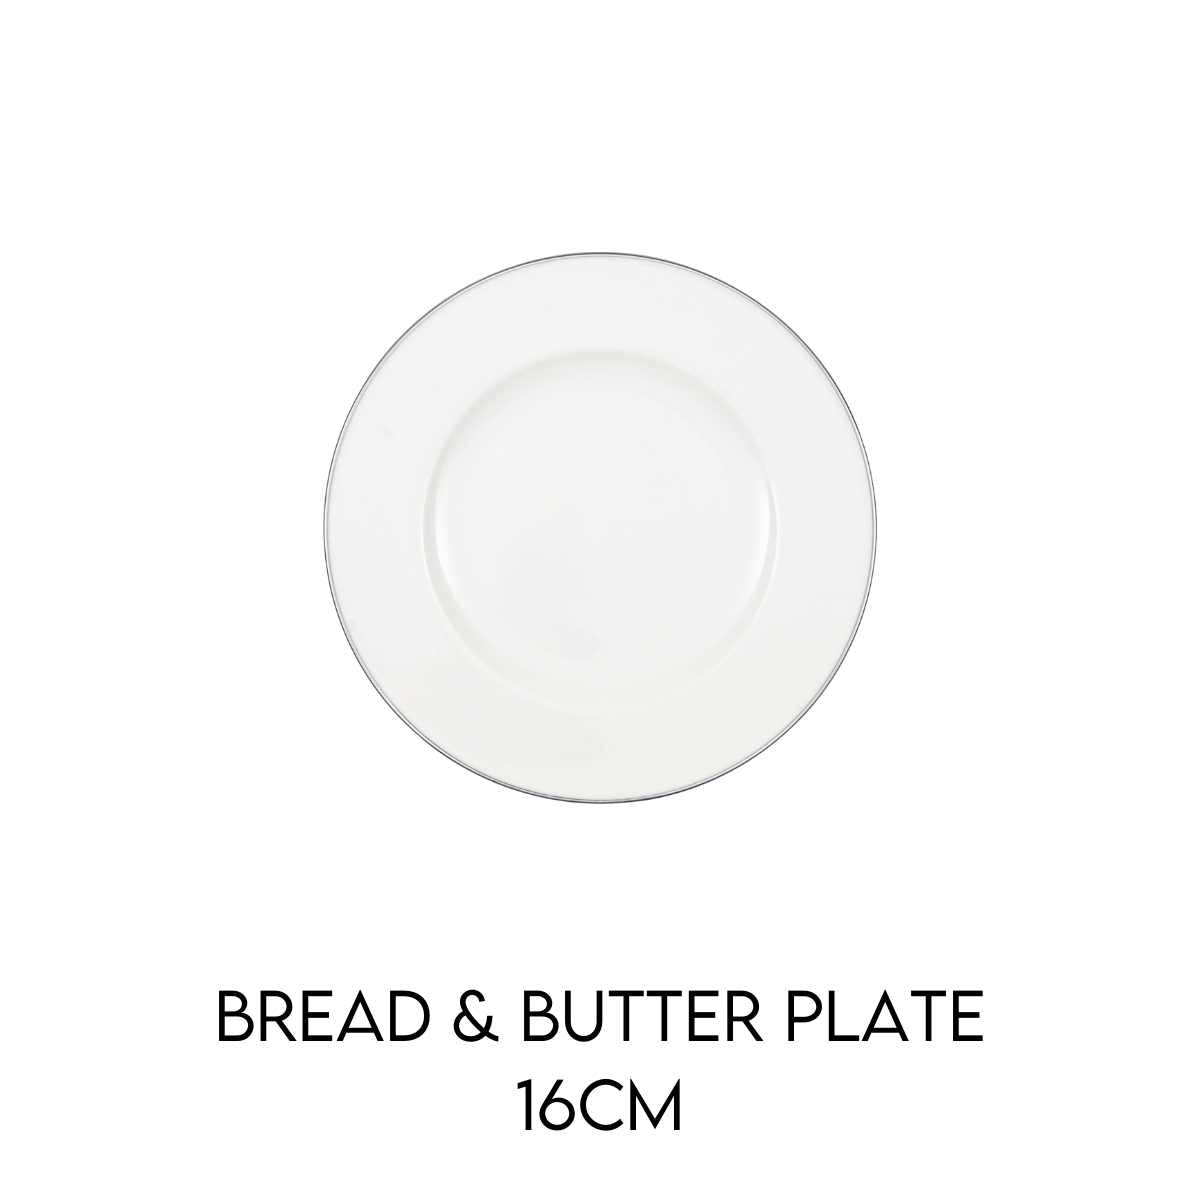 Hostaro Tableware Anmu Platinum Bread and Butter plate